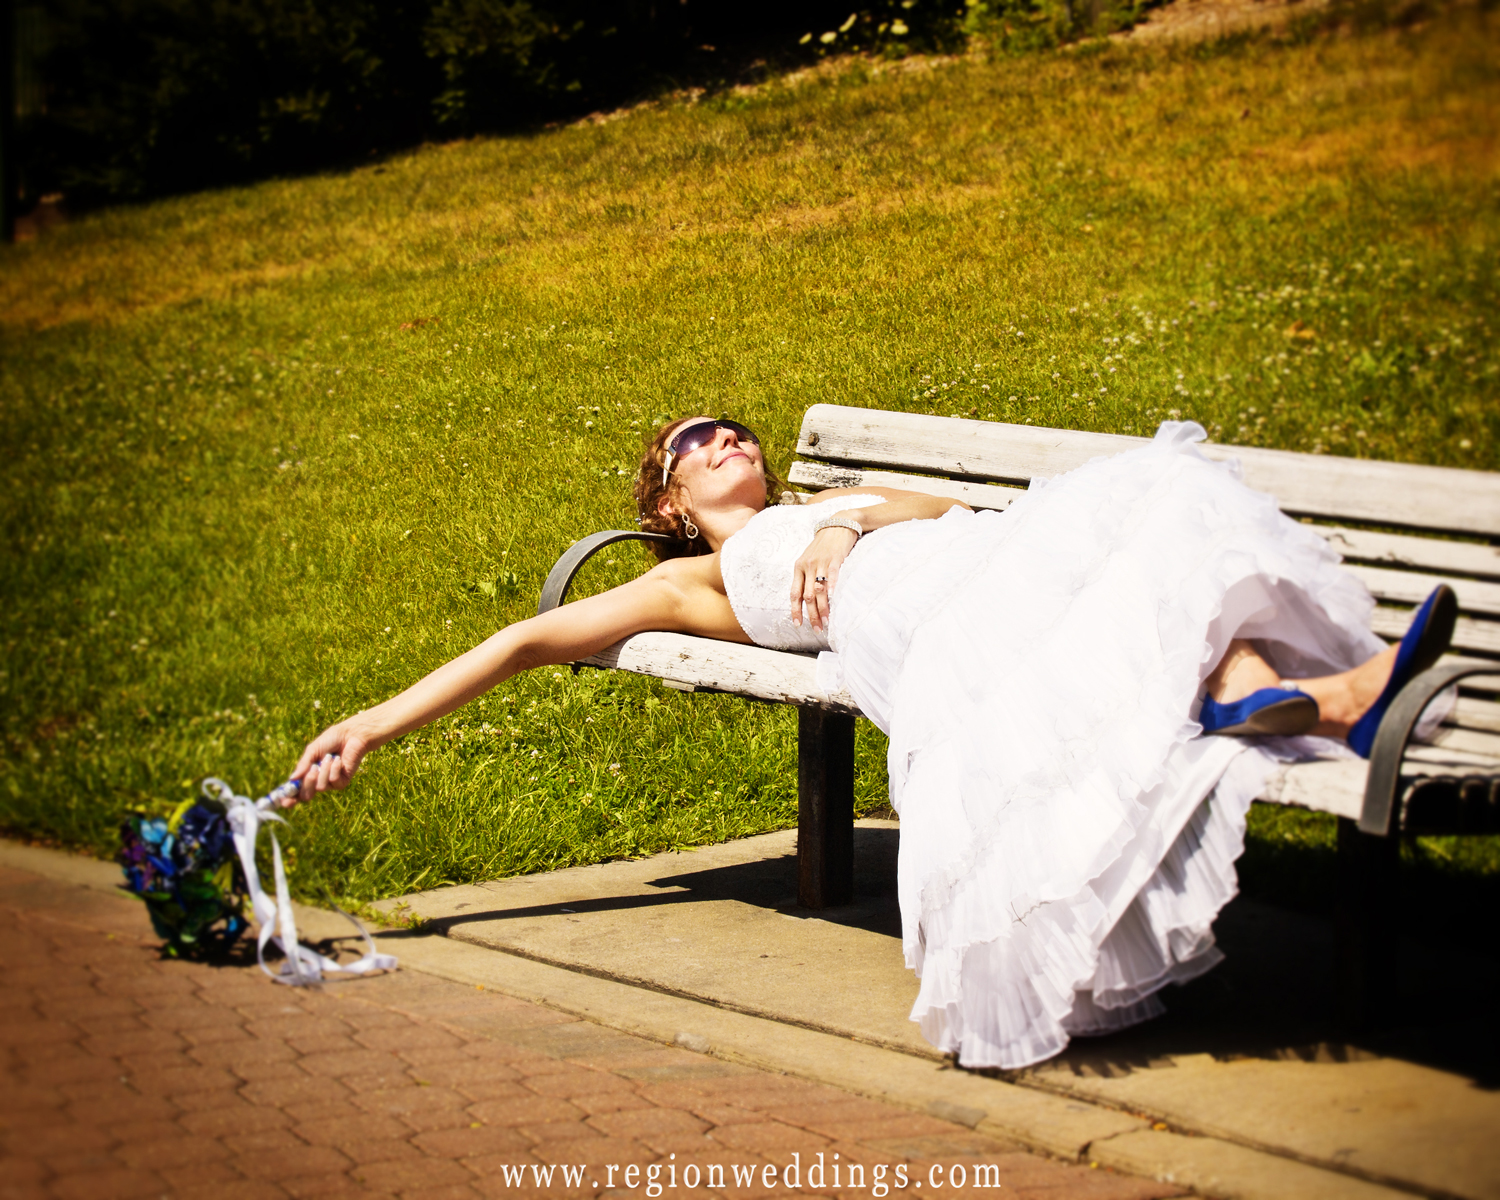 The bride takes a short nap during her wedding photo session in Hobart, Indiana.